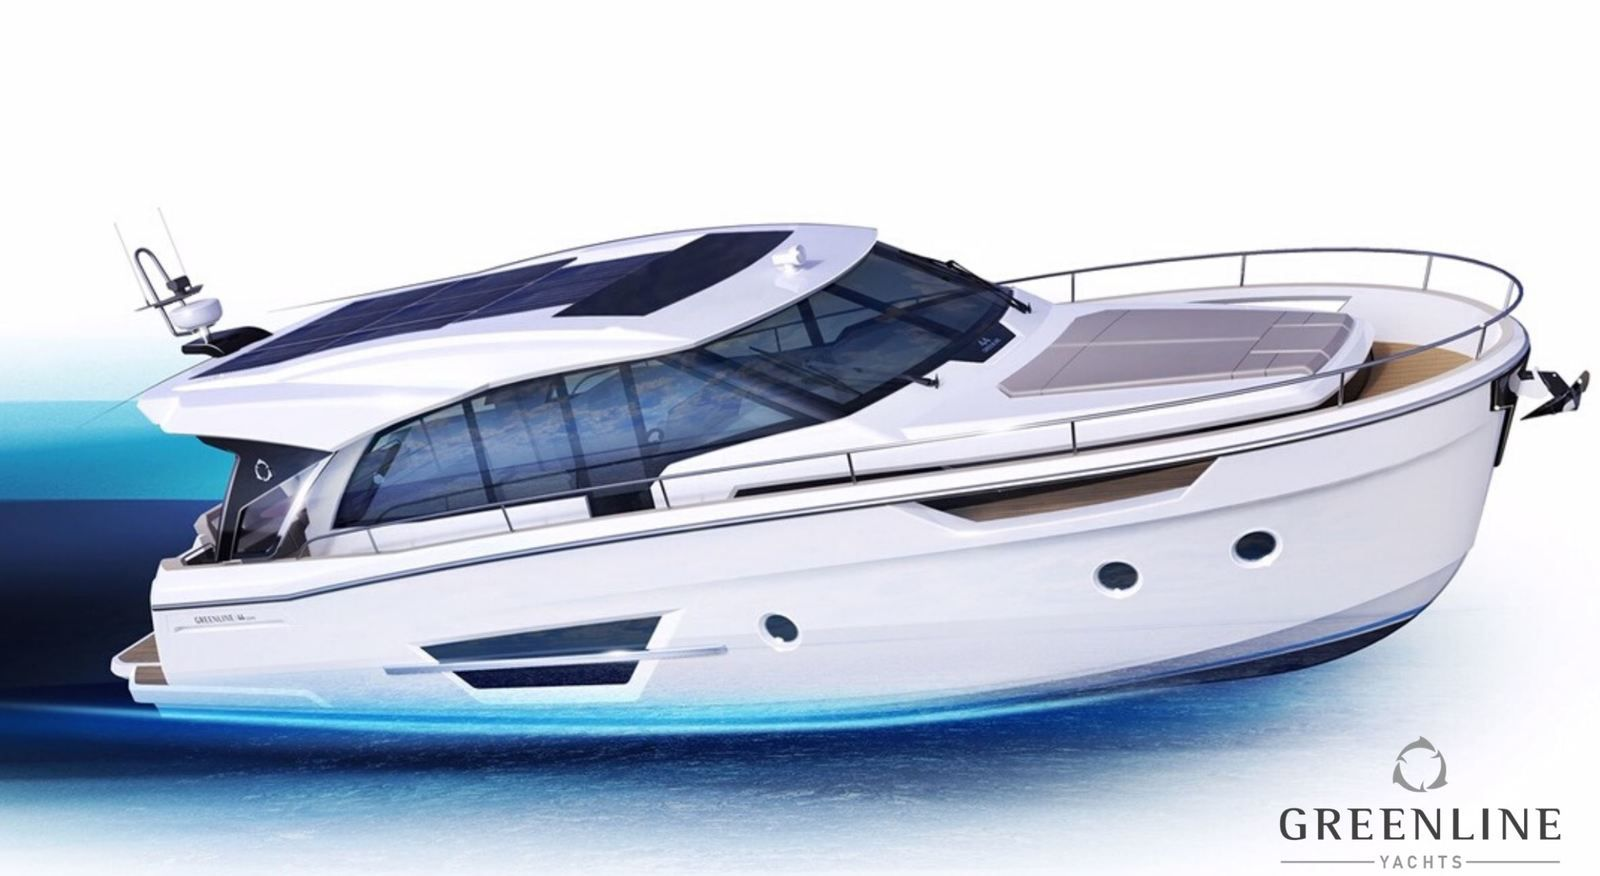 Boot 2021 - Greenline annuncia la Greenline 45 Coupé